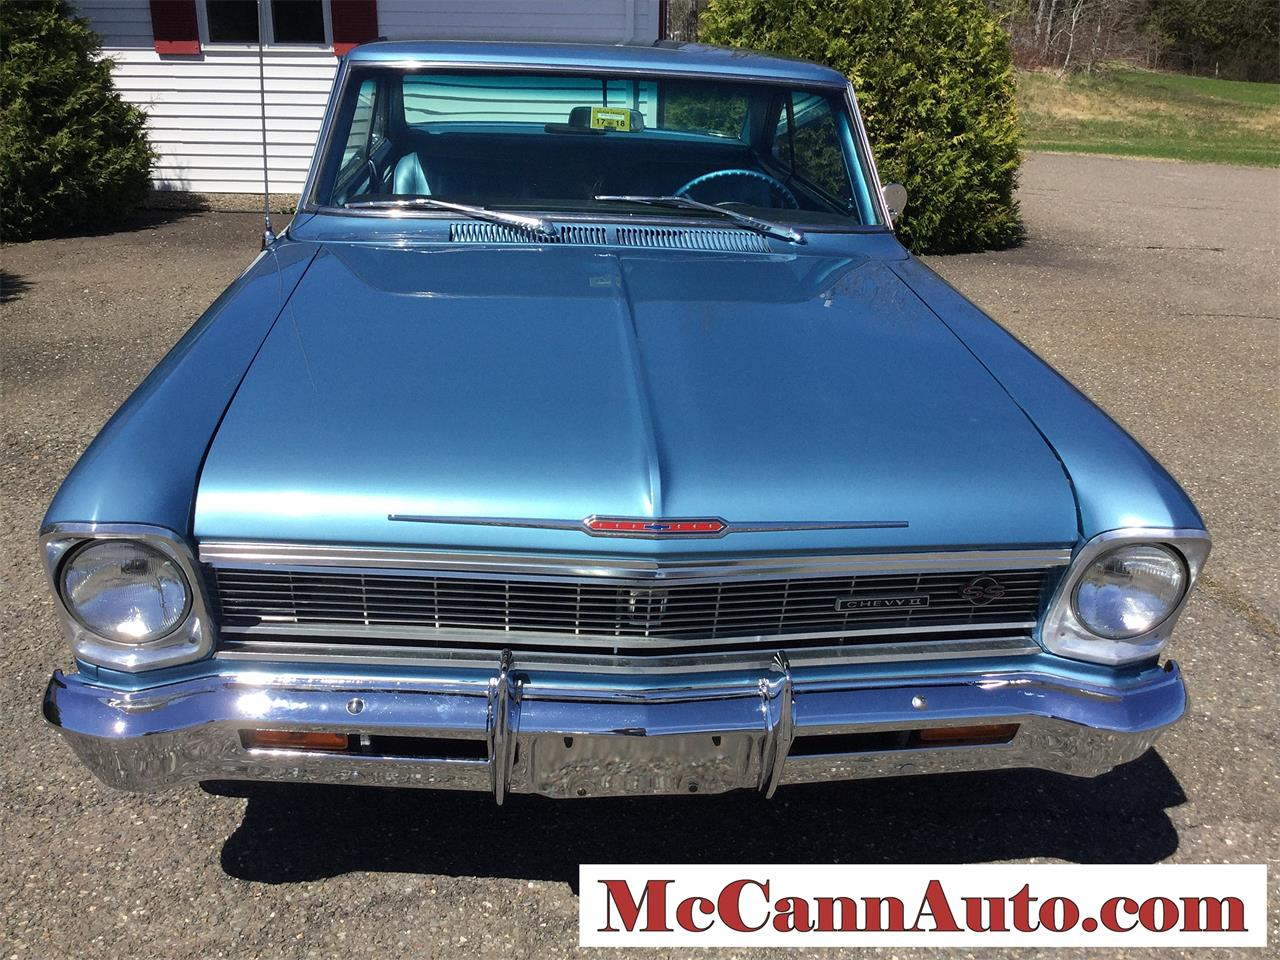 Large Picture of '66 Nova II SS located in Houlton Maine Offered by a Private Seller - JQ4K